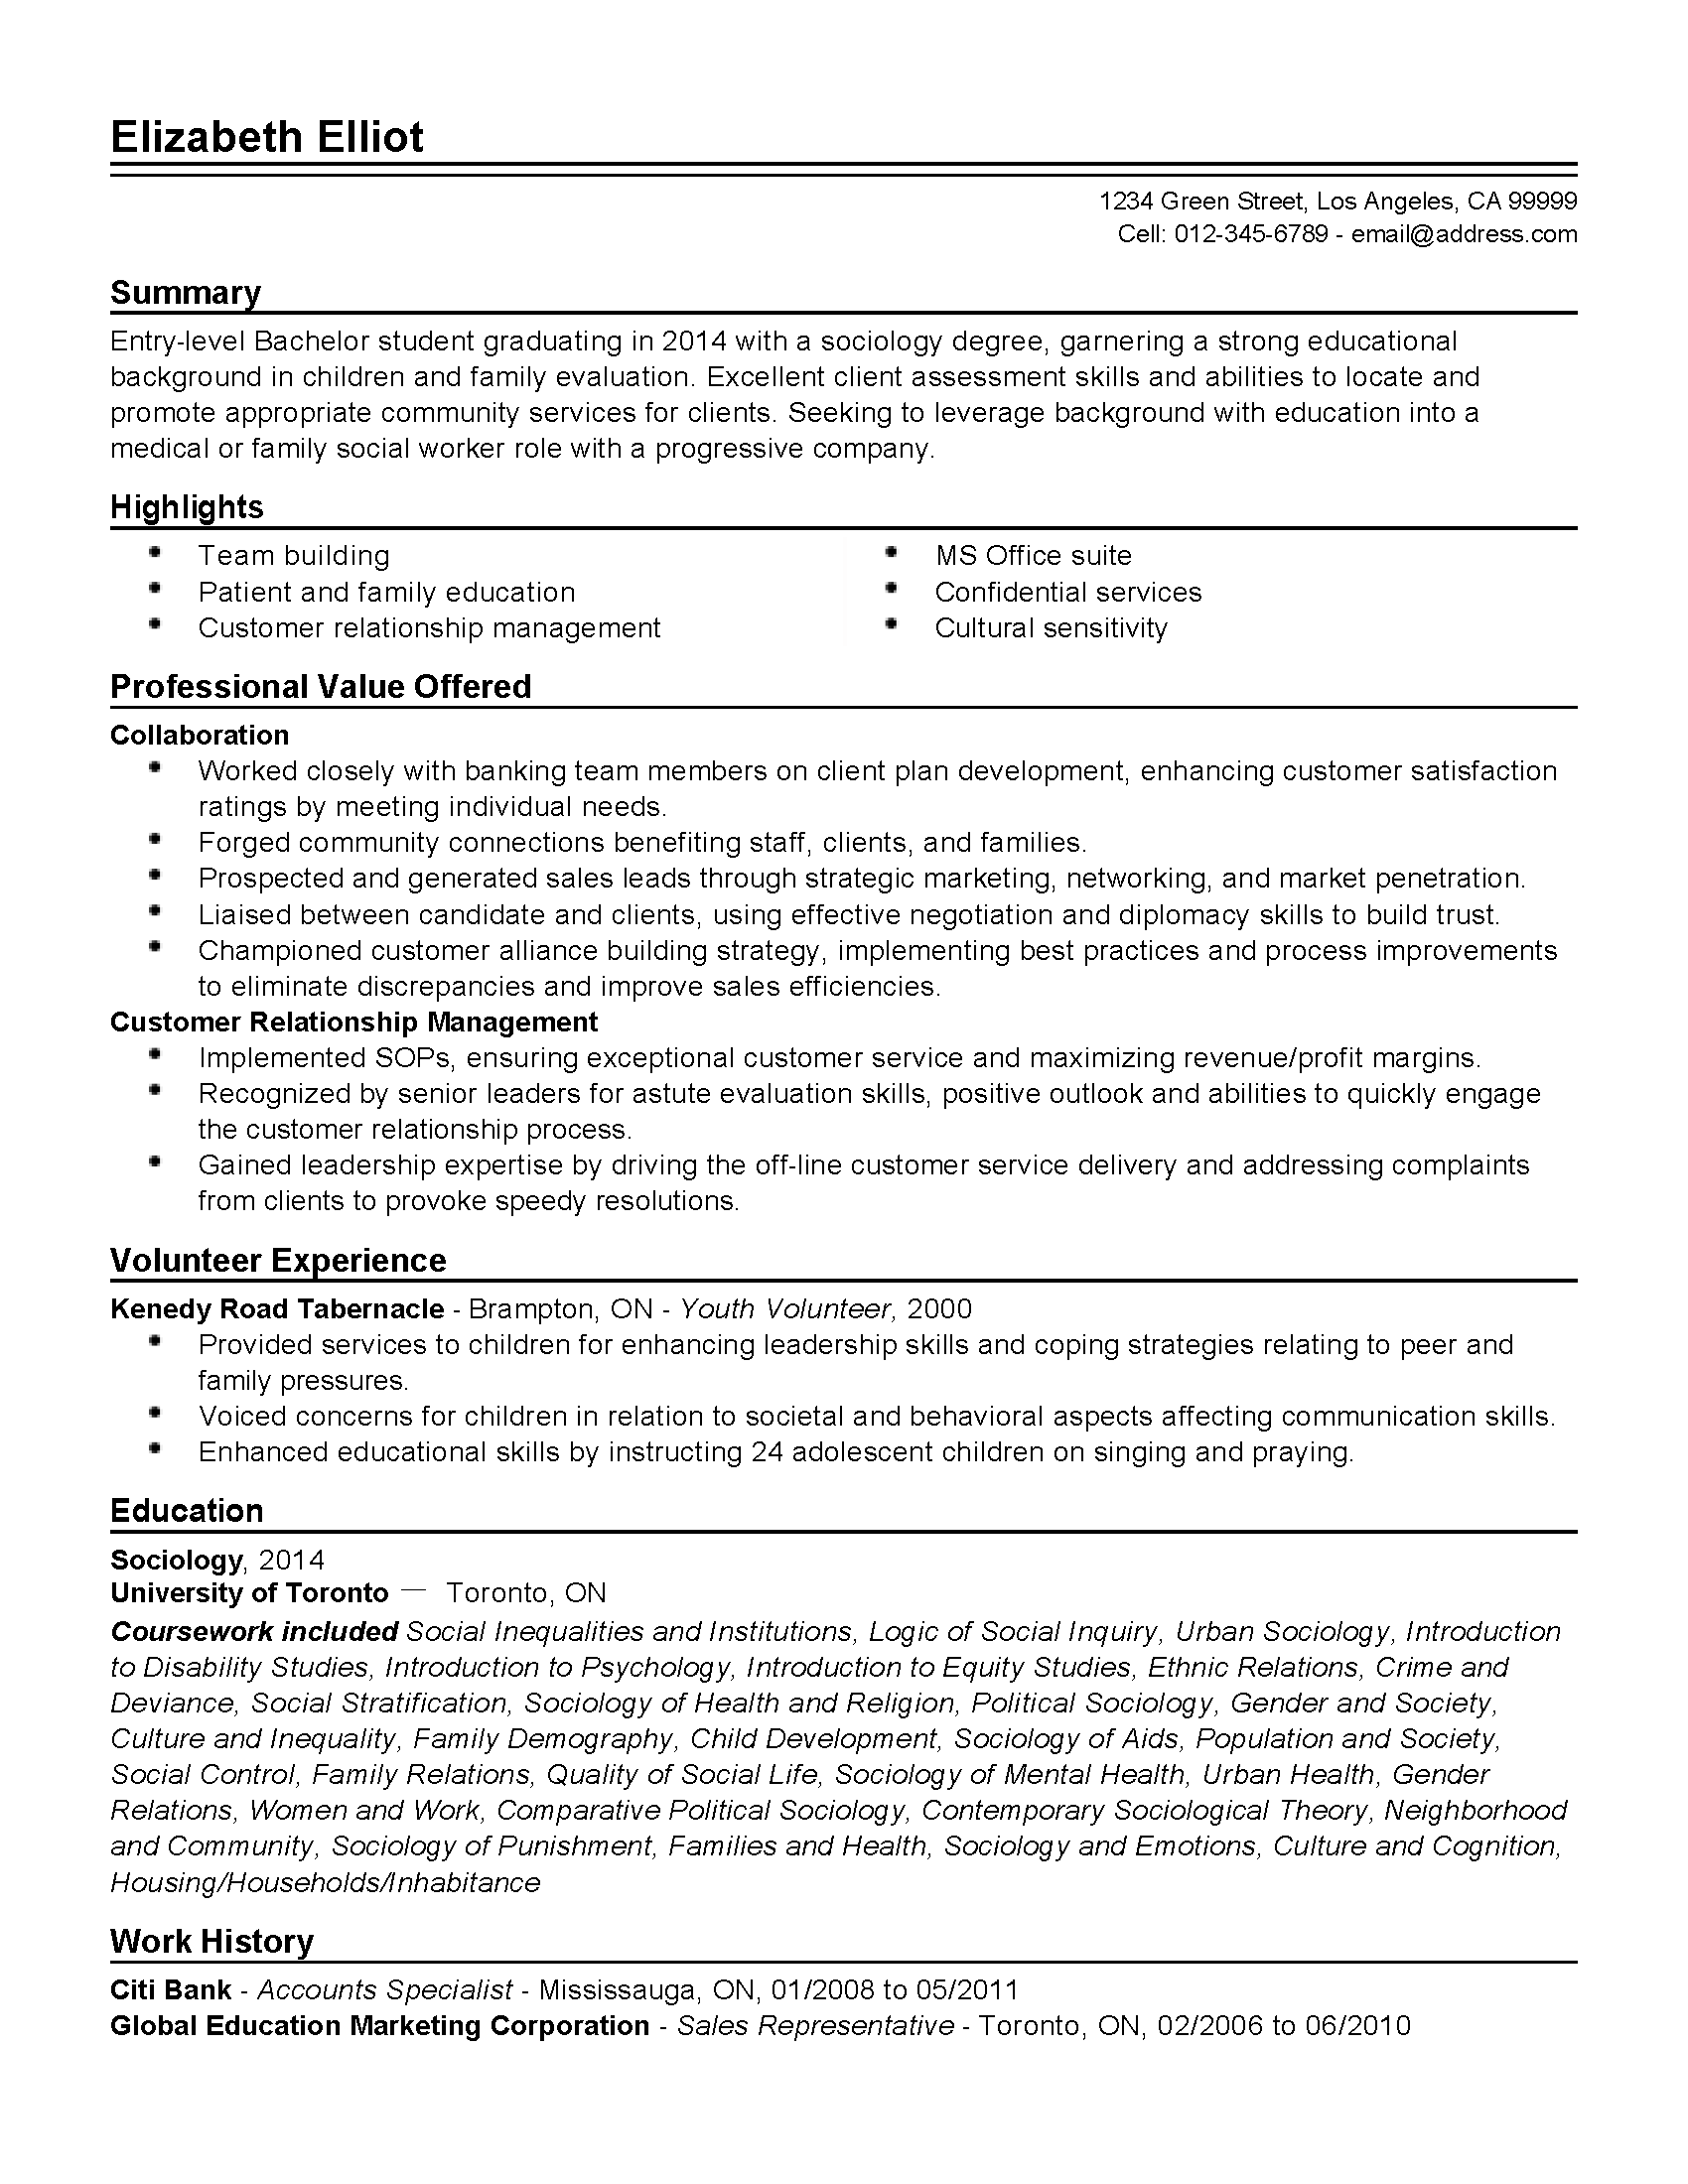 Professional EntryLevel Social Worker Templates to